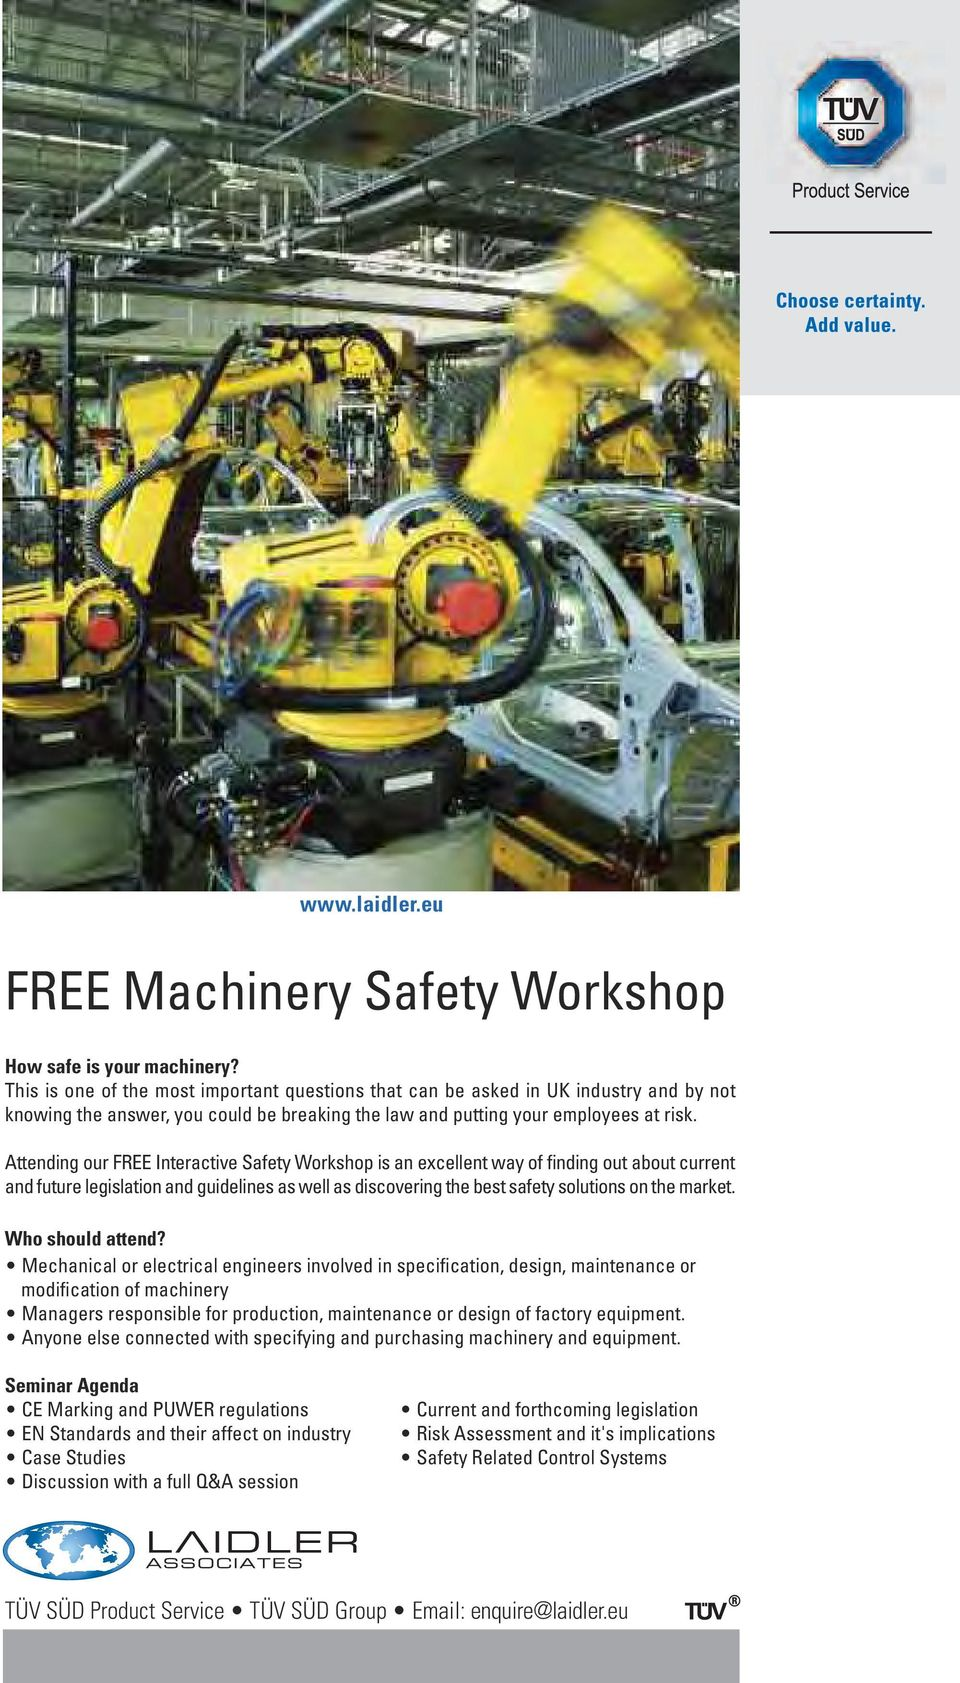 Attending our FREE Interactive Safety Workshop is an excellent way of finding out about current and future legislation and guidelines as well as discovering the best safety solutions on the market.